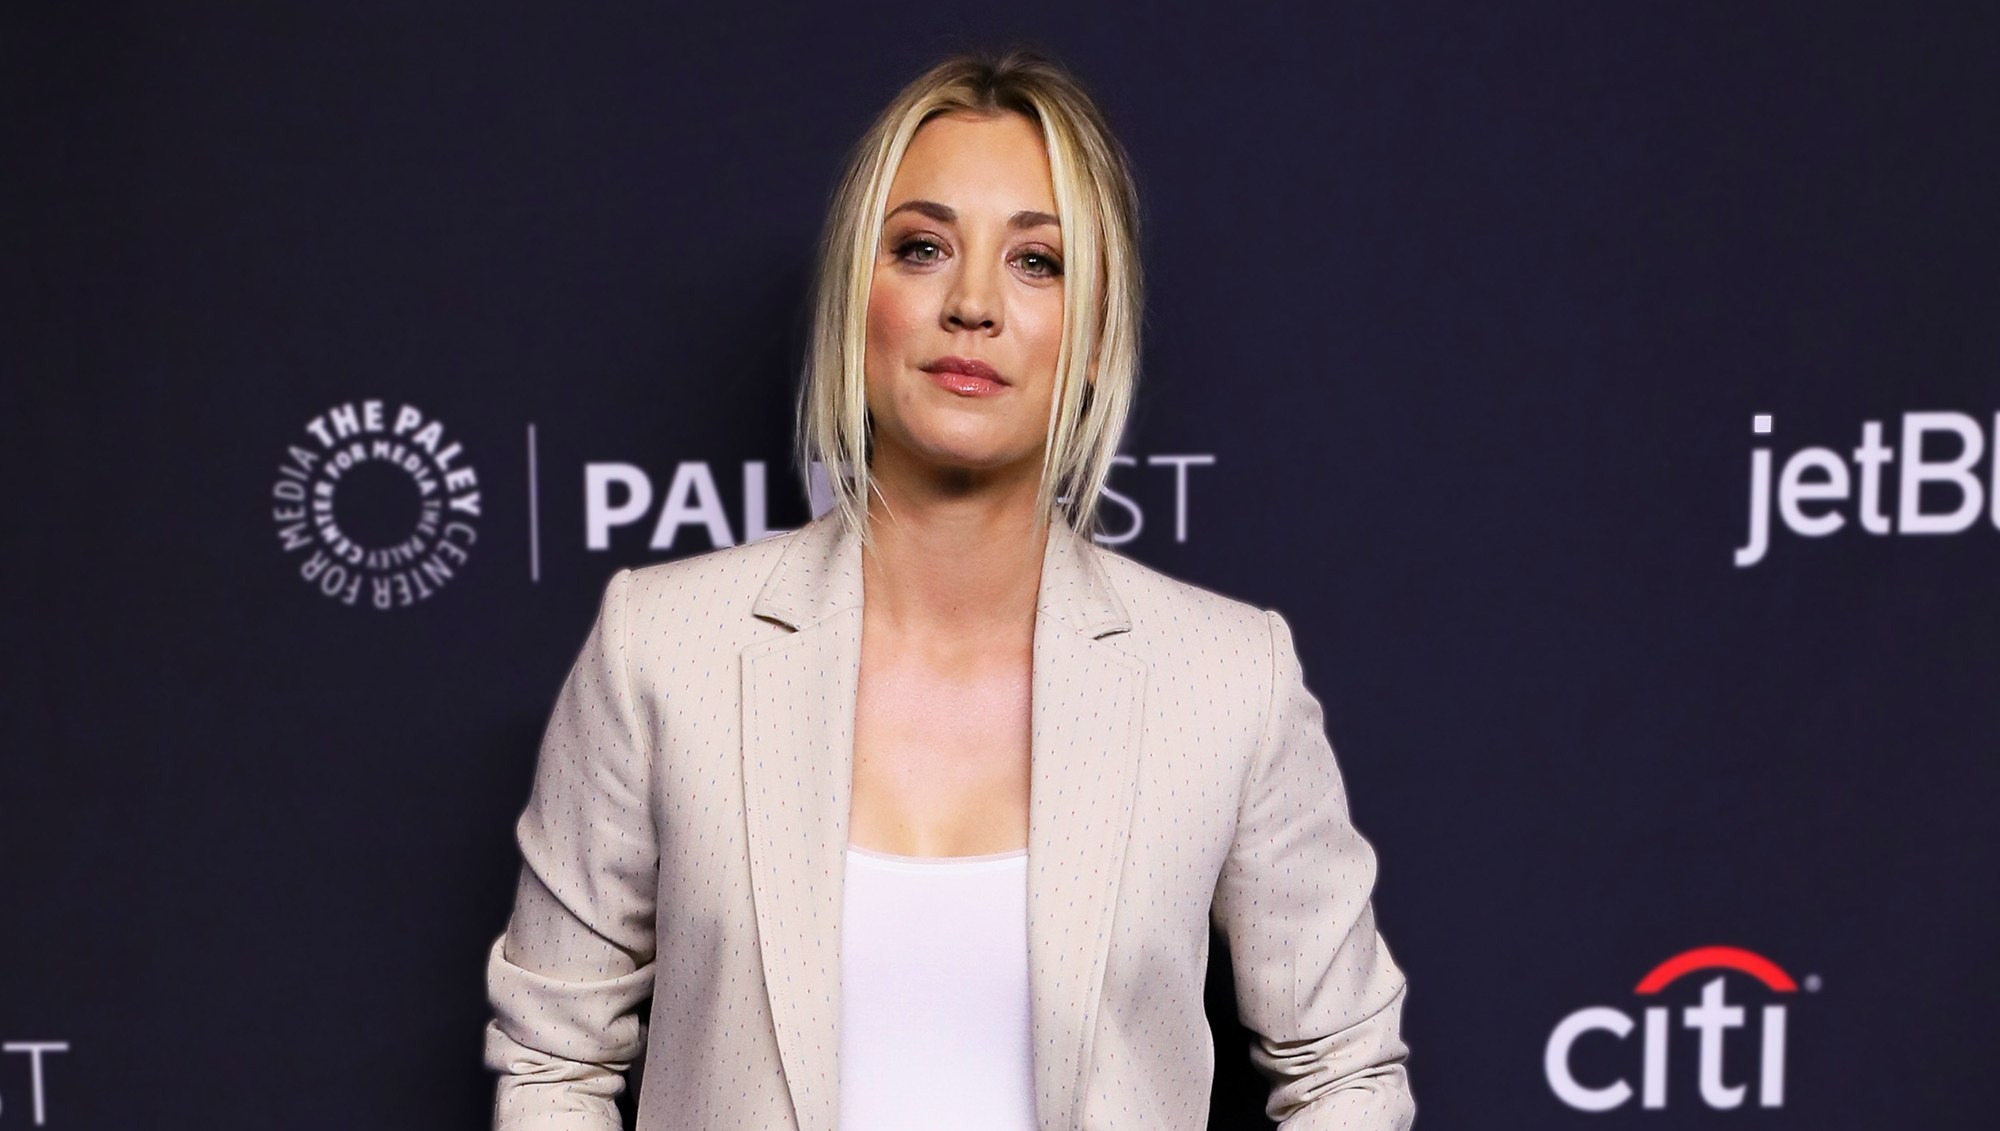 Kaley Cuoco Calls Her Dog Shirley 'The Grinch Who Ate Santa' for Chewing Up Santa Toy 'Aggressively'